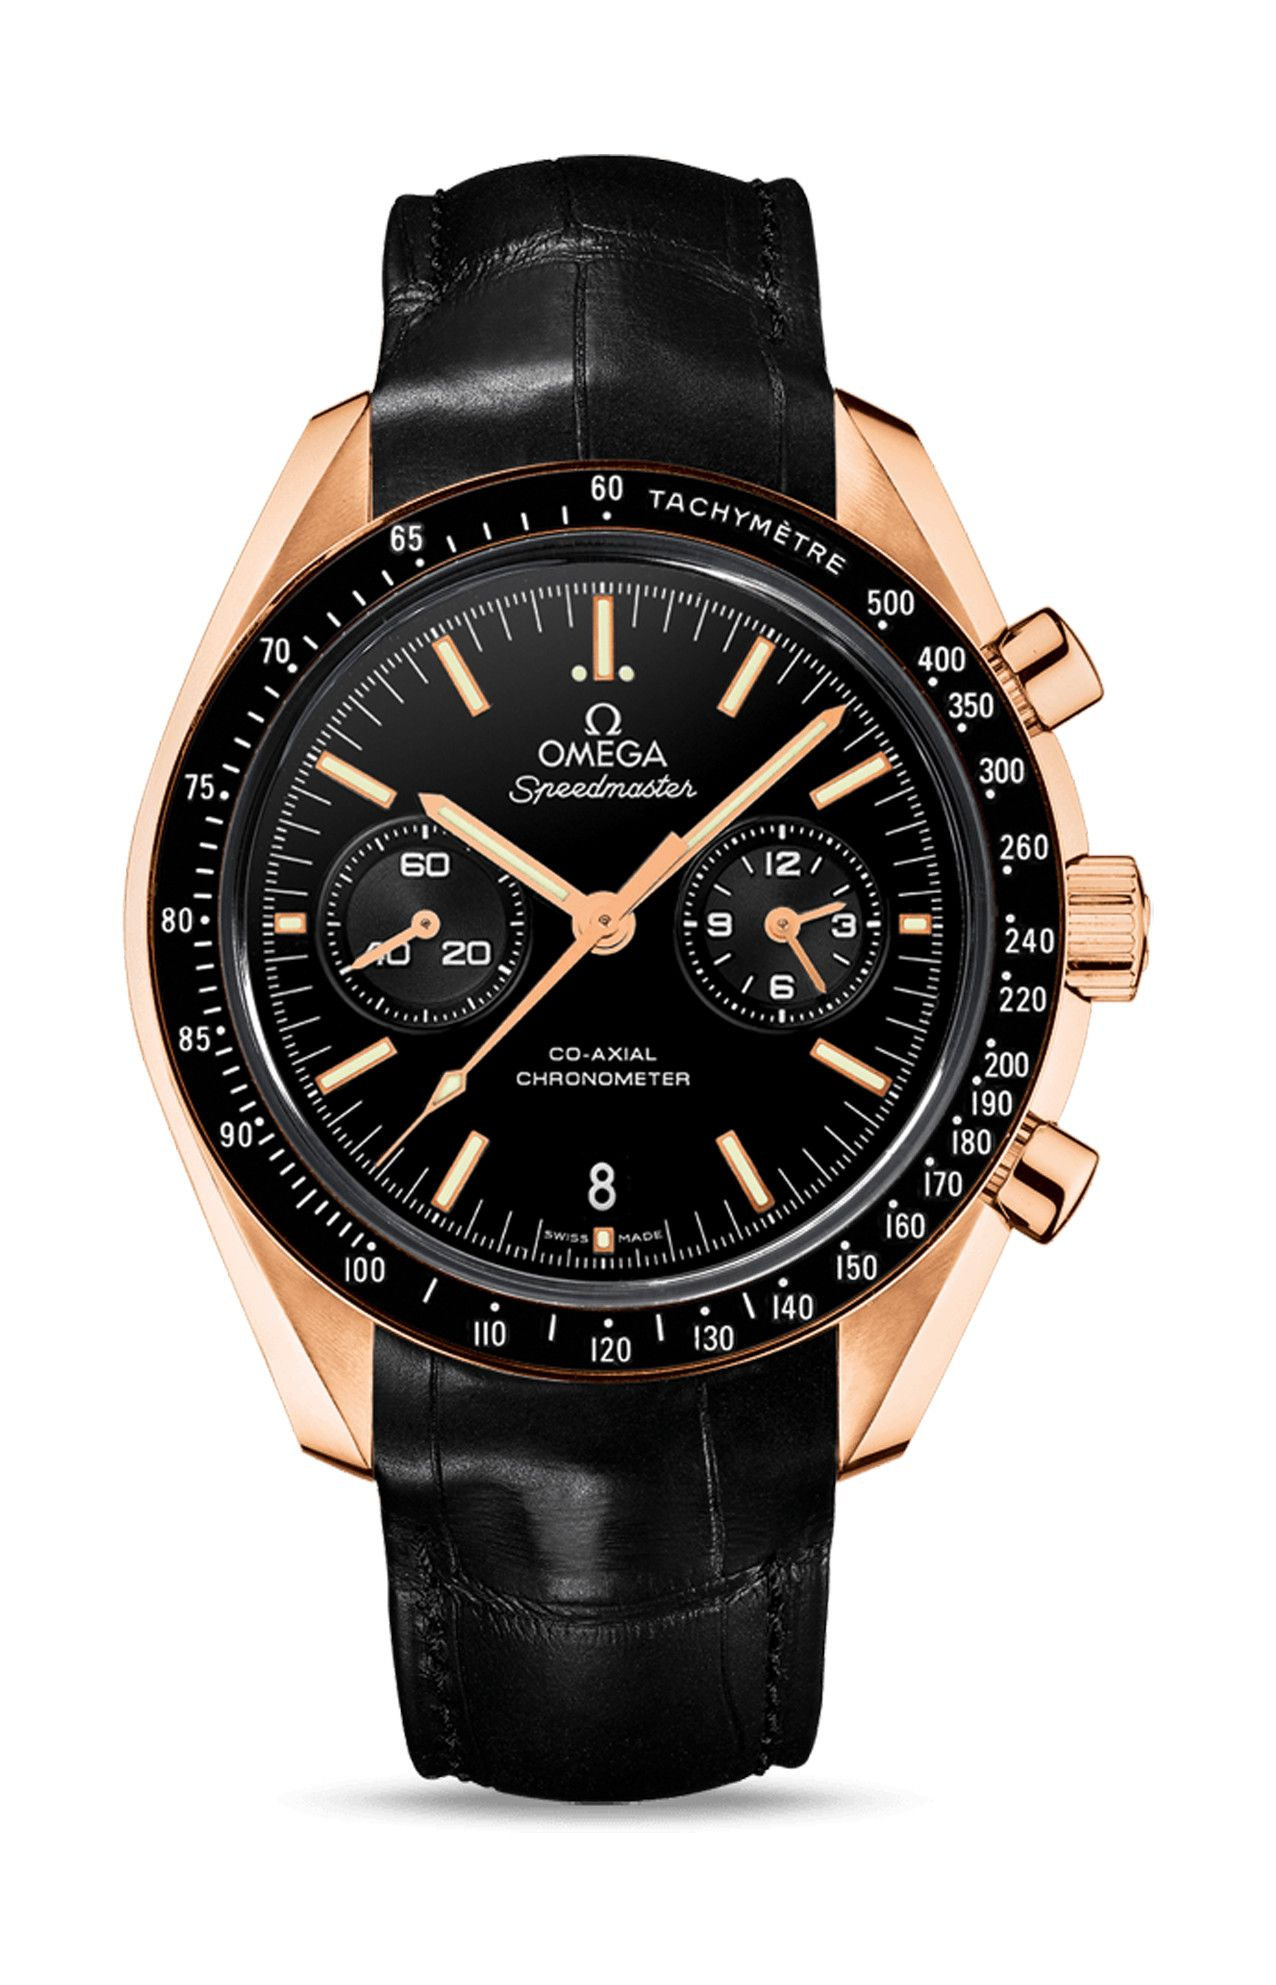 MOONWATCH CO-AXIAL CHRONOGRAPH - 311.63.44.51.01.001